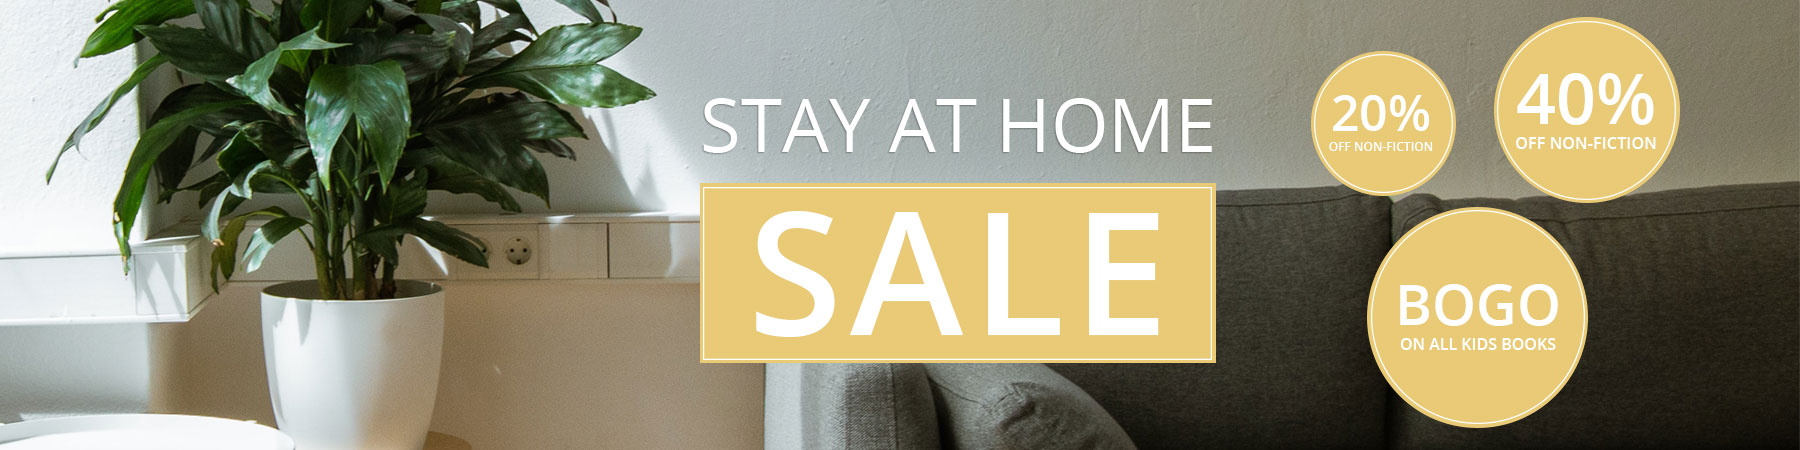 Stay at Home Sale - TMP